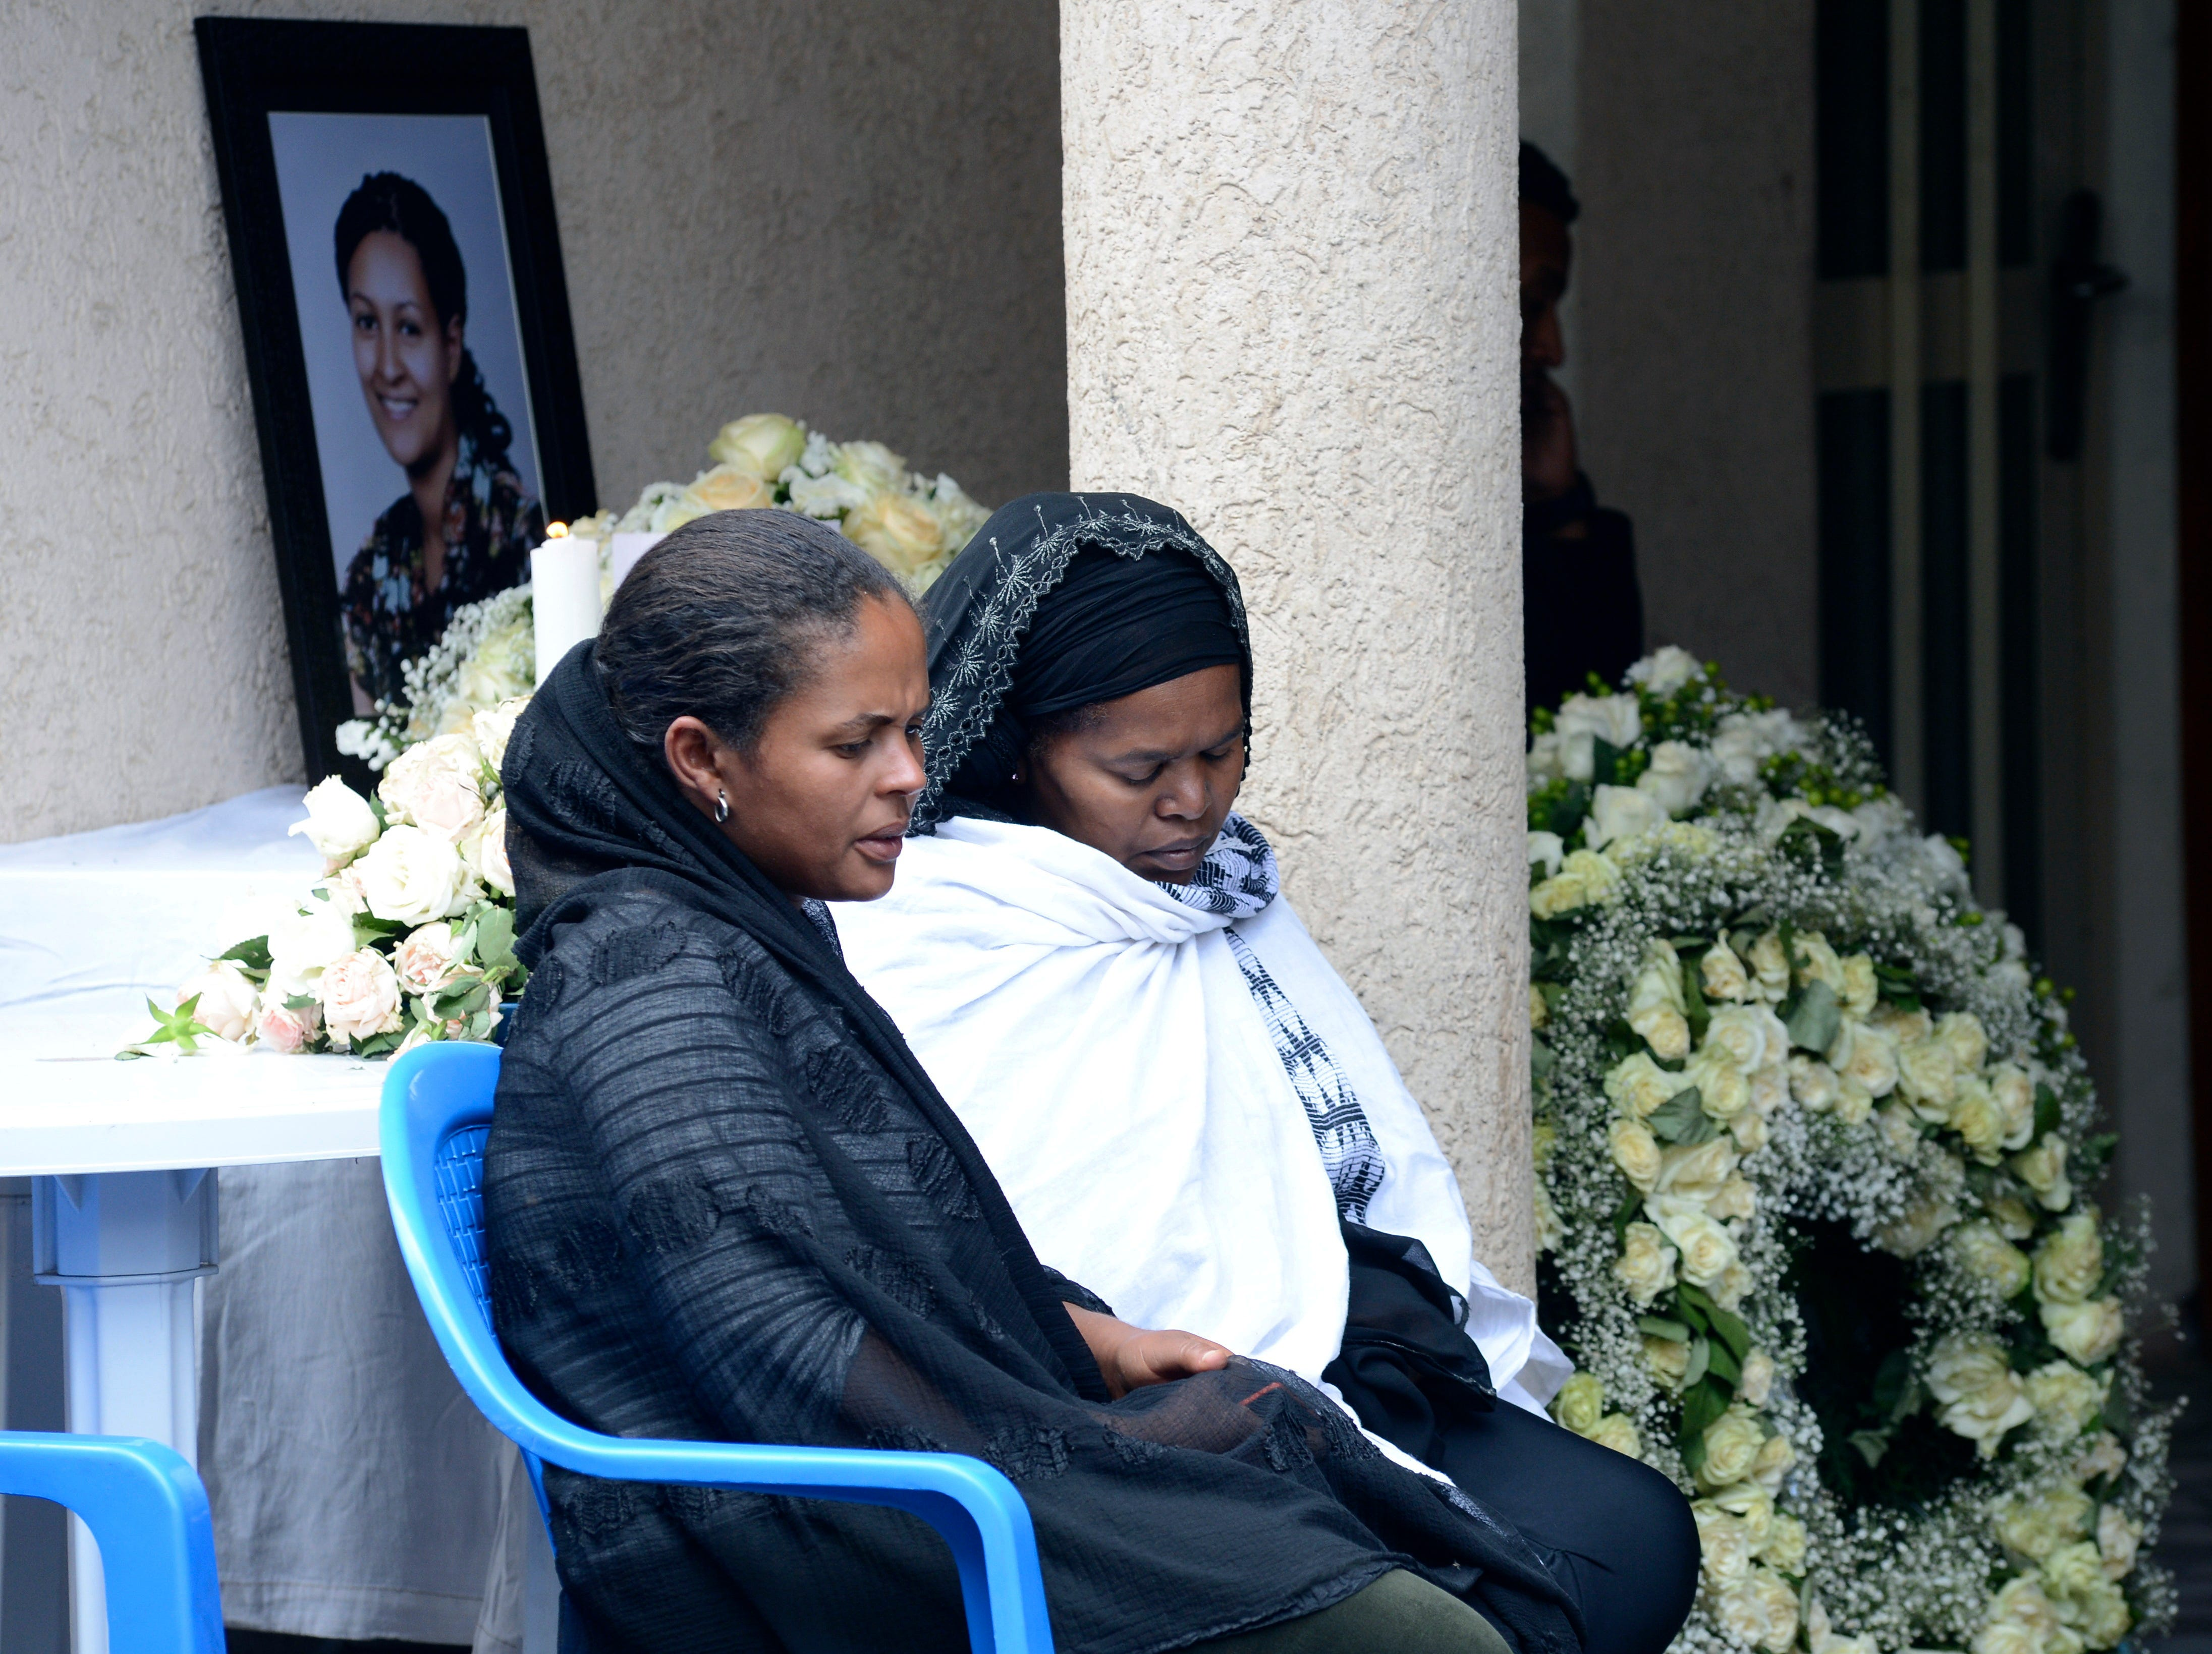 Family members mourn for crash victim air hostess Sara Gebremichael, 38, at her house in Addis Ababa, Ethiopia, Wednesday, March 13, 2019. Ethiopian Airlines Boeing 737 Max 8 crashed shortly after takeoff on Sunday killing all 157 on board, near Bishoftu, south of Addis Ababa, in Ethiopia .The black box from the Boeing jet that crashed will be sent overseas for analysis but no country has been chosen yet, an Ethiopian Airlines spokesman said Wednesday, as much of the world grounded or barred the plane model and grieving families arrived at the disaster site.